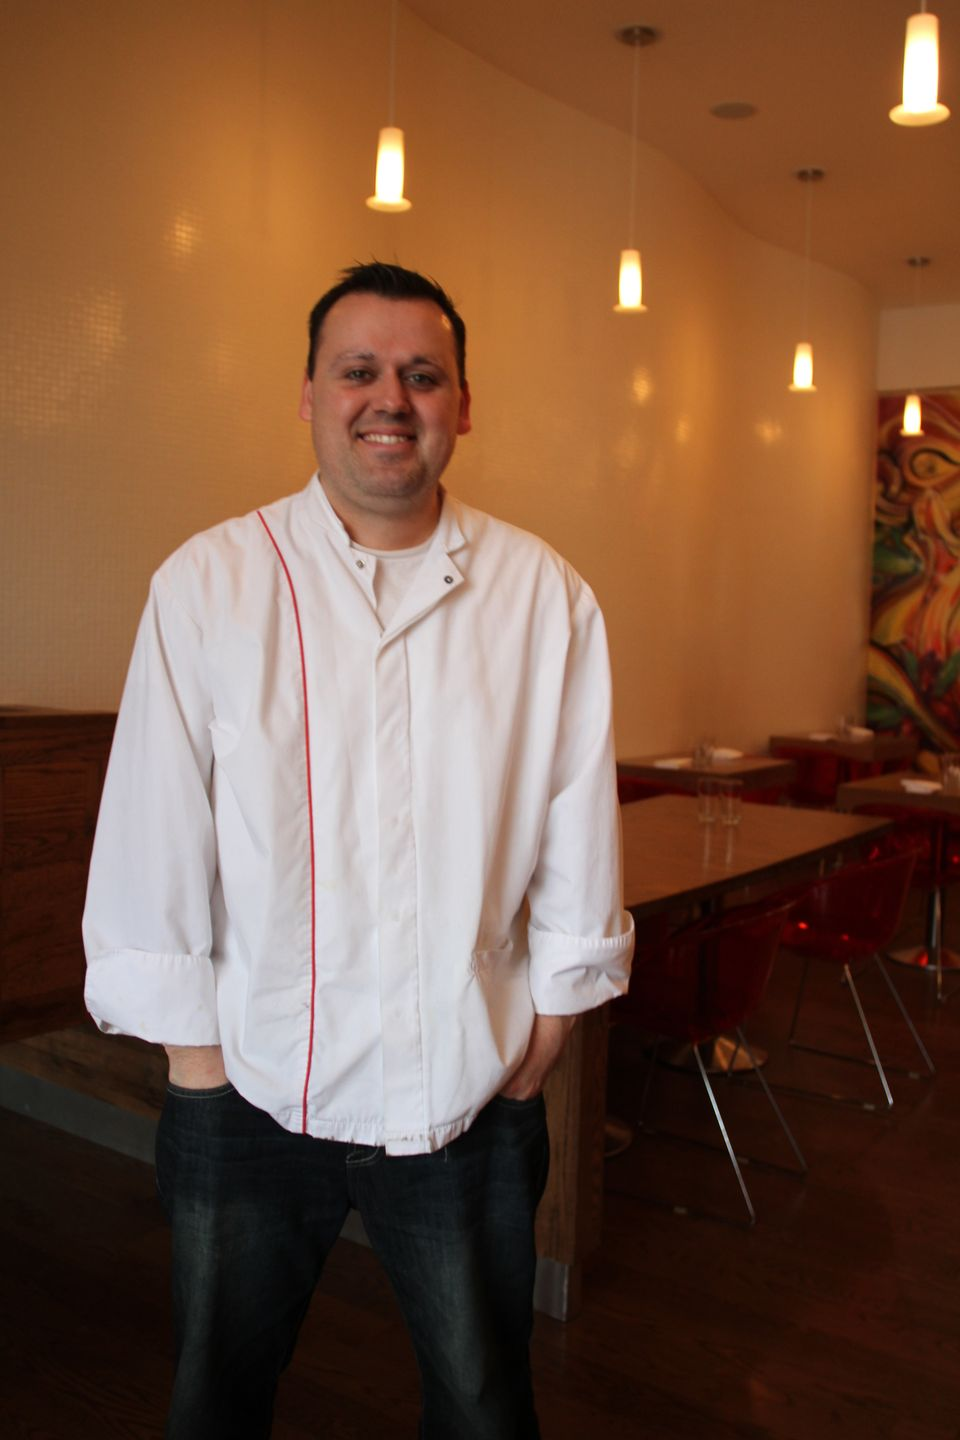 At just 36, Chef Homaro Cantu has already worked under the legendary Charlie Trotter, established two groundbreaking restaura